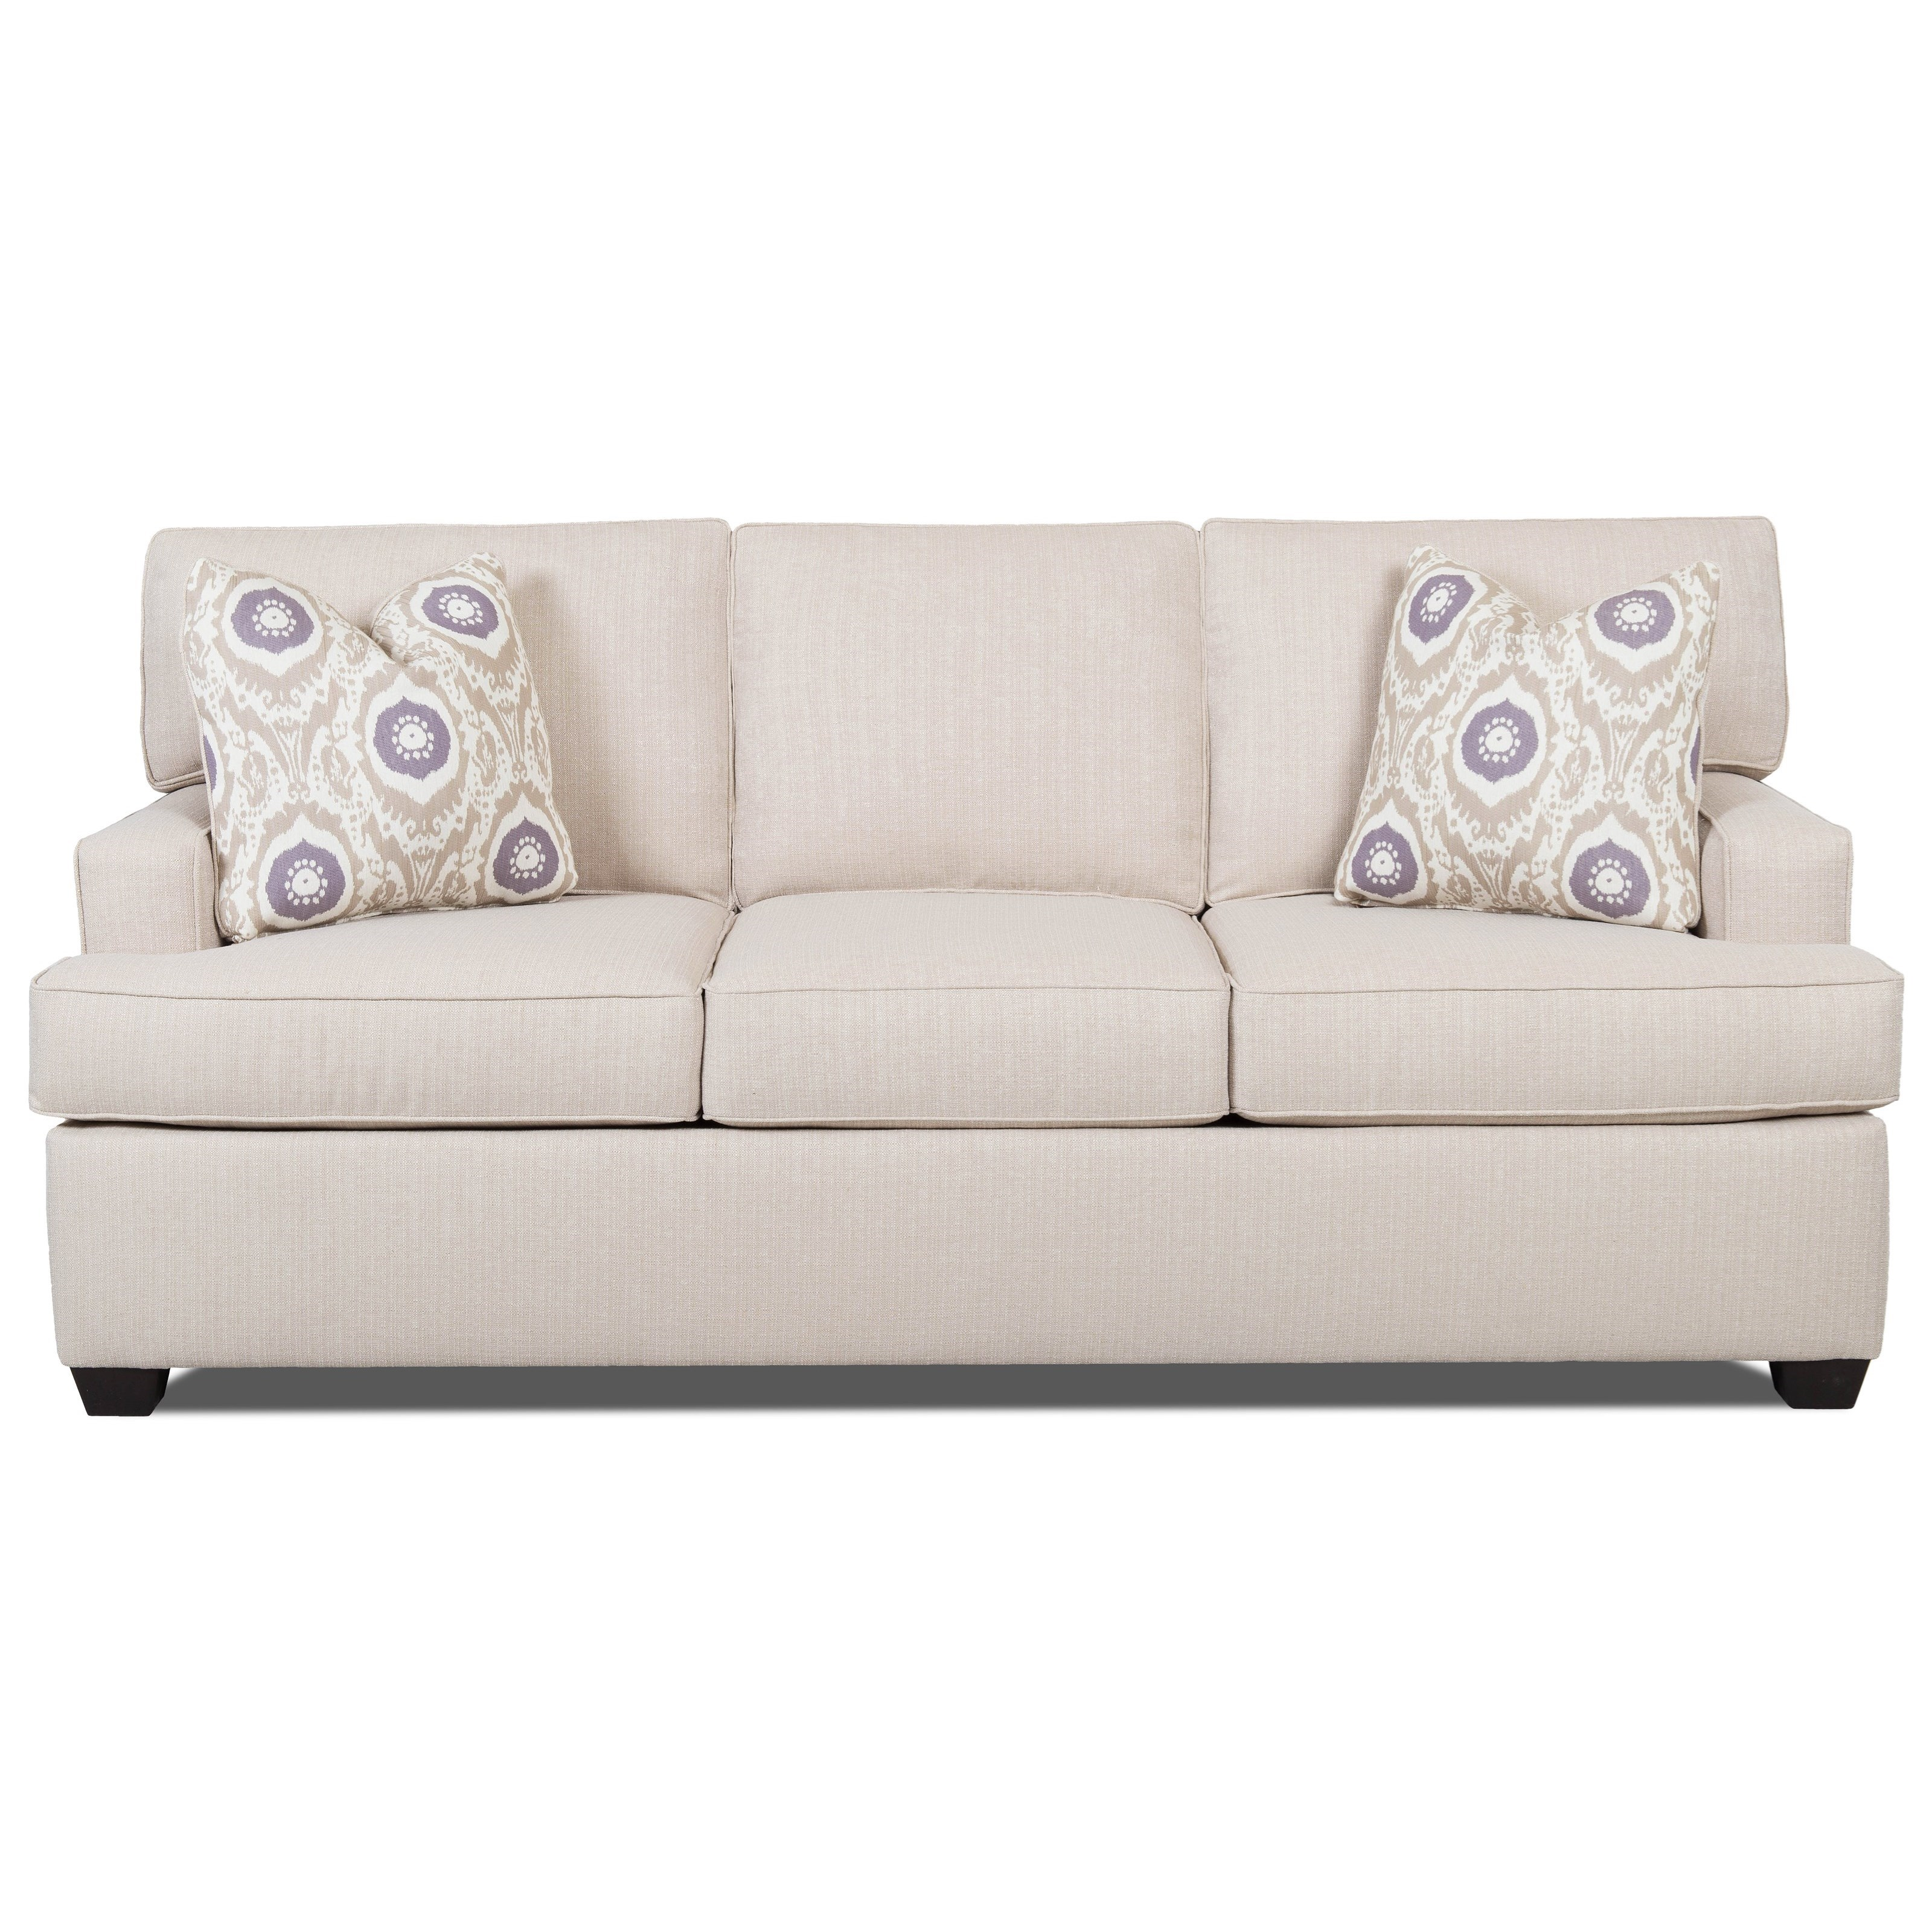 Contemporary Sleeper Sofa With Track Arms And Queen Sized